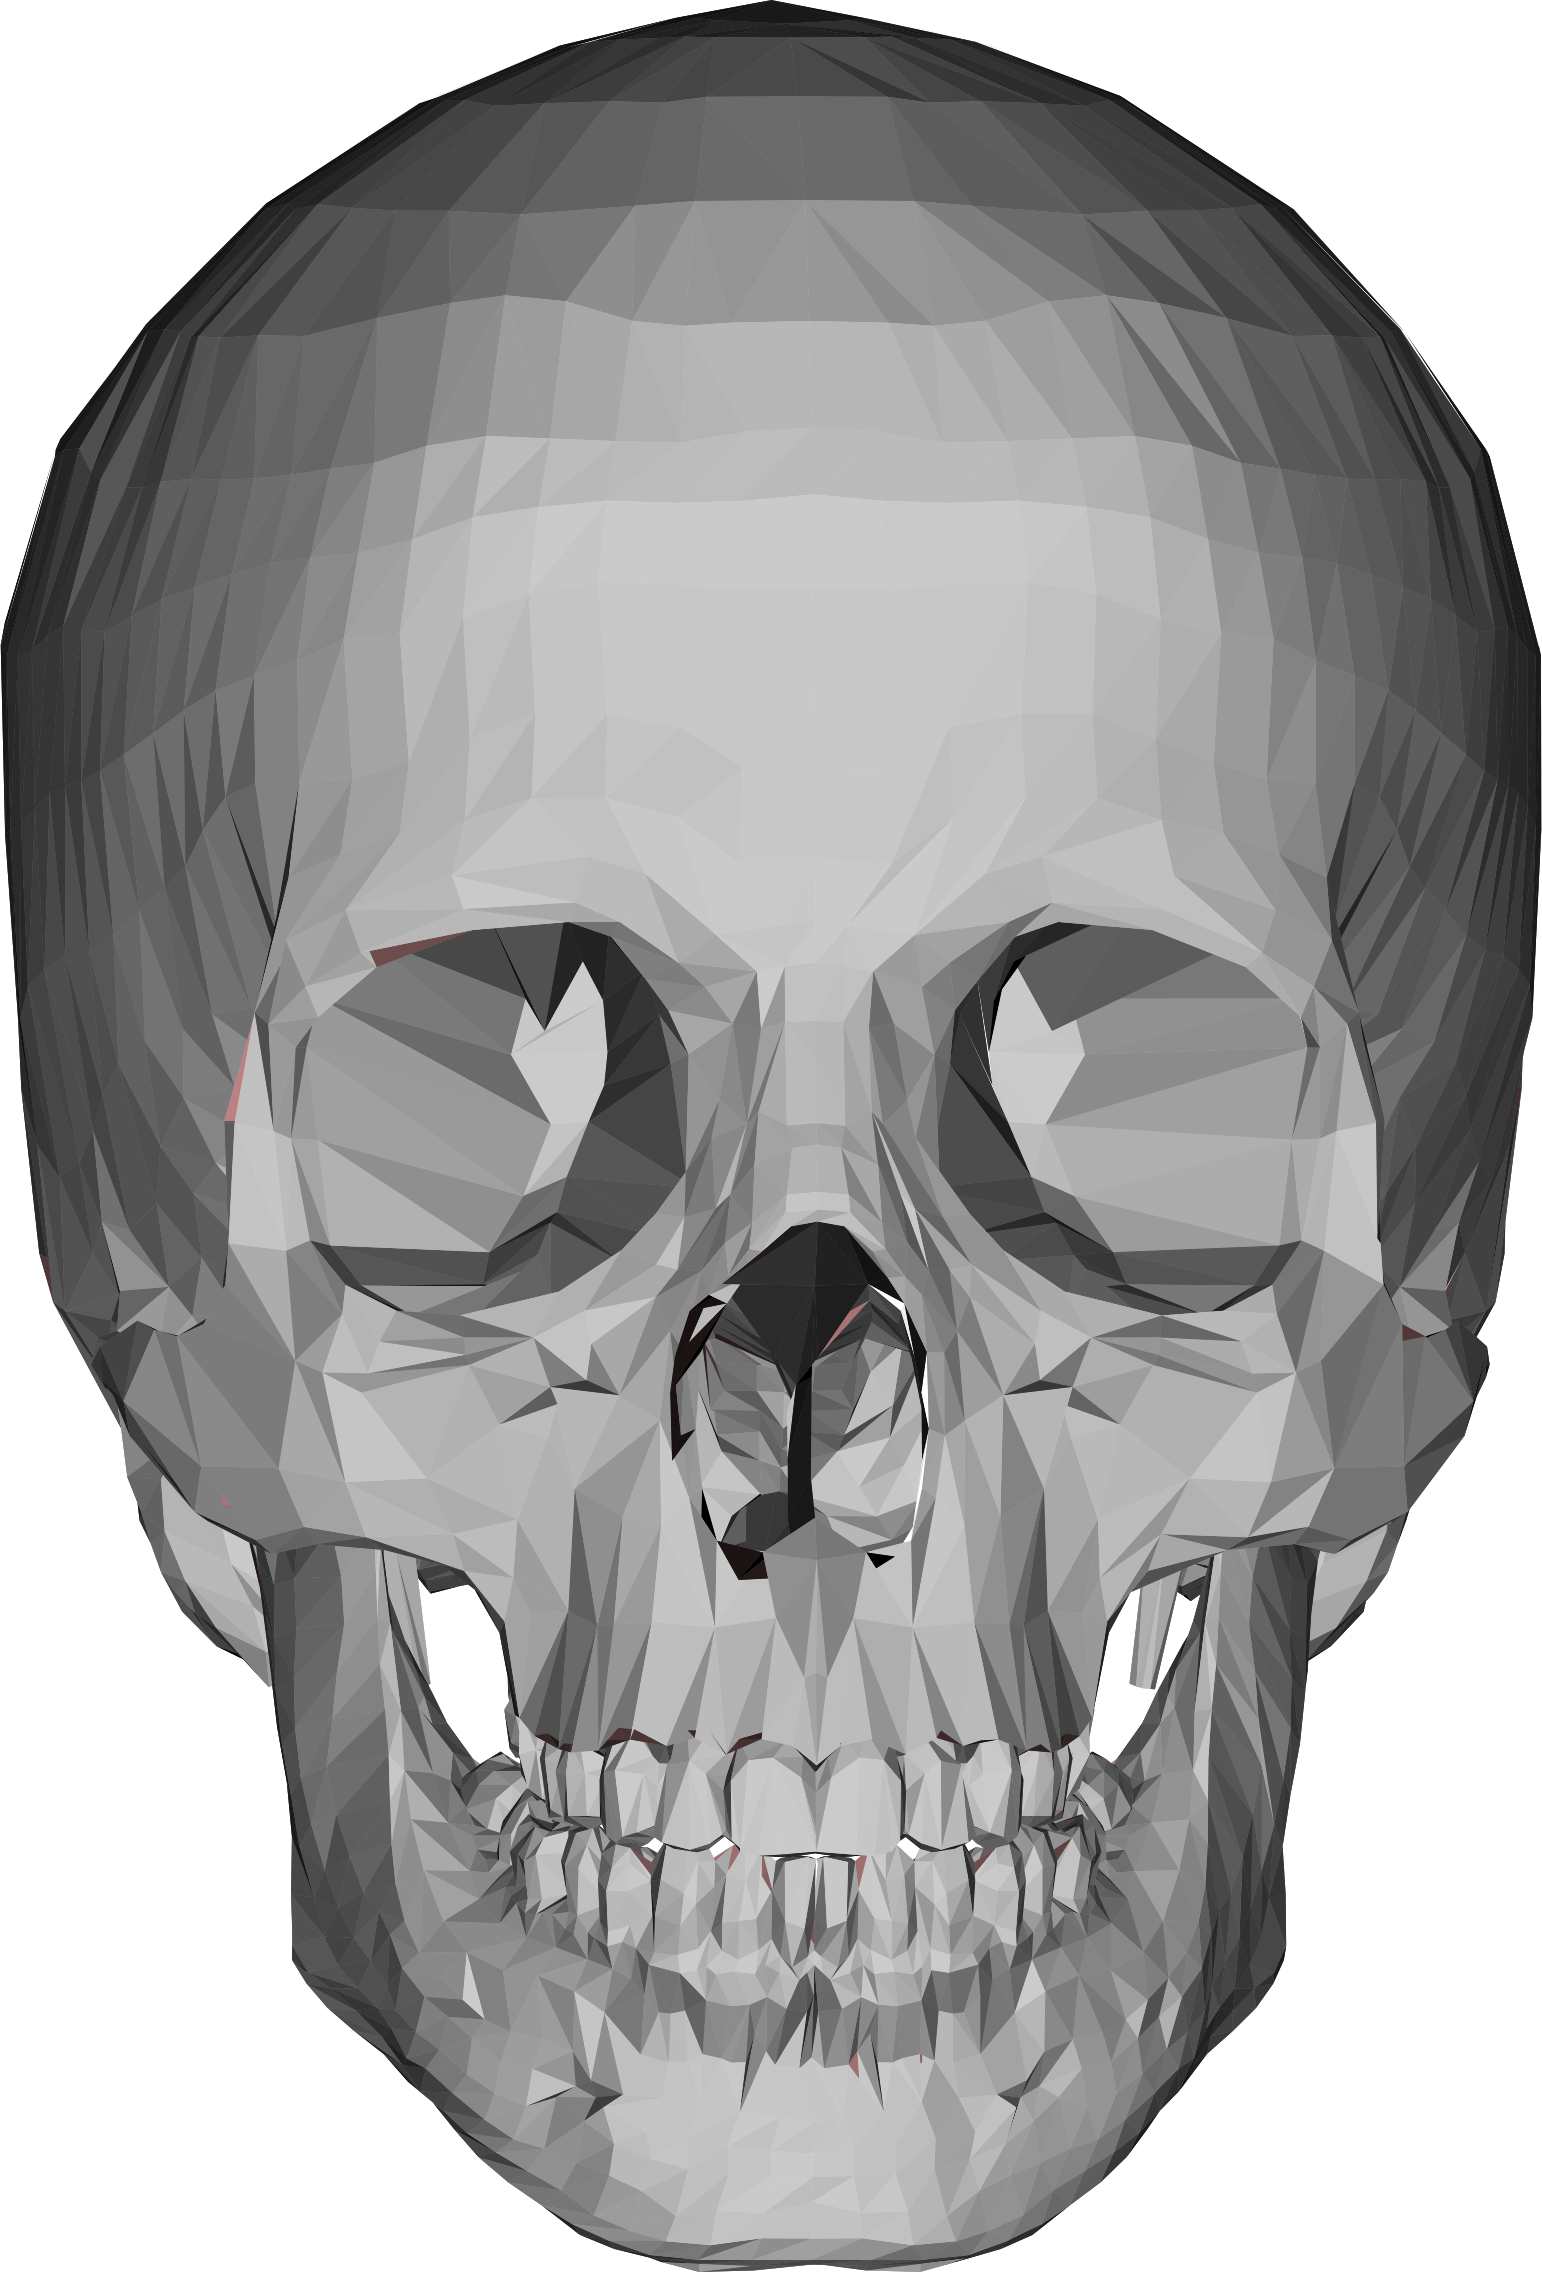 Mouth clipart skull. D low poly big